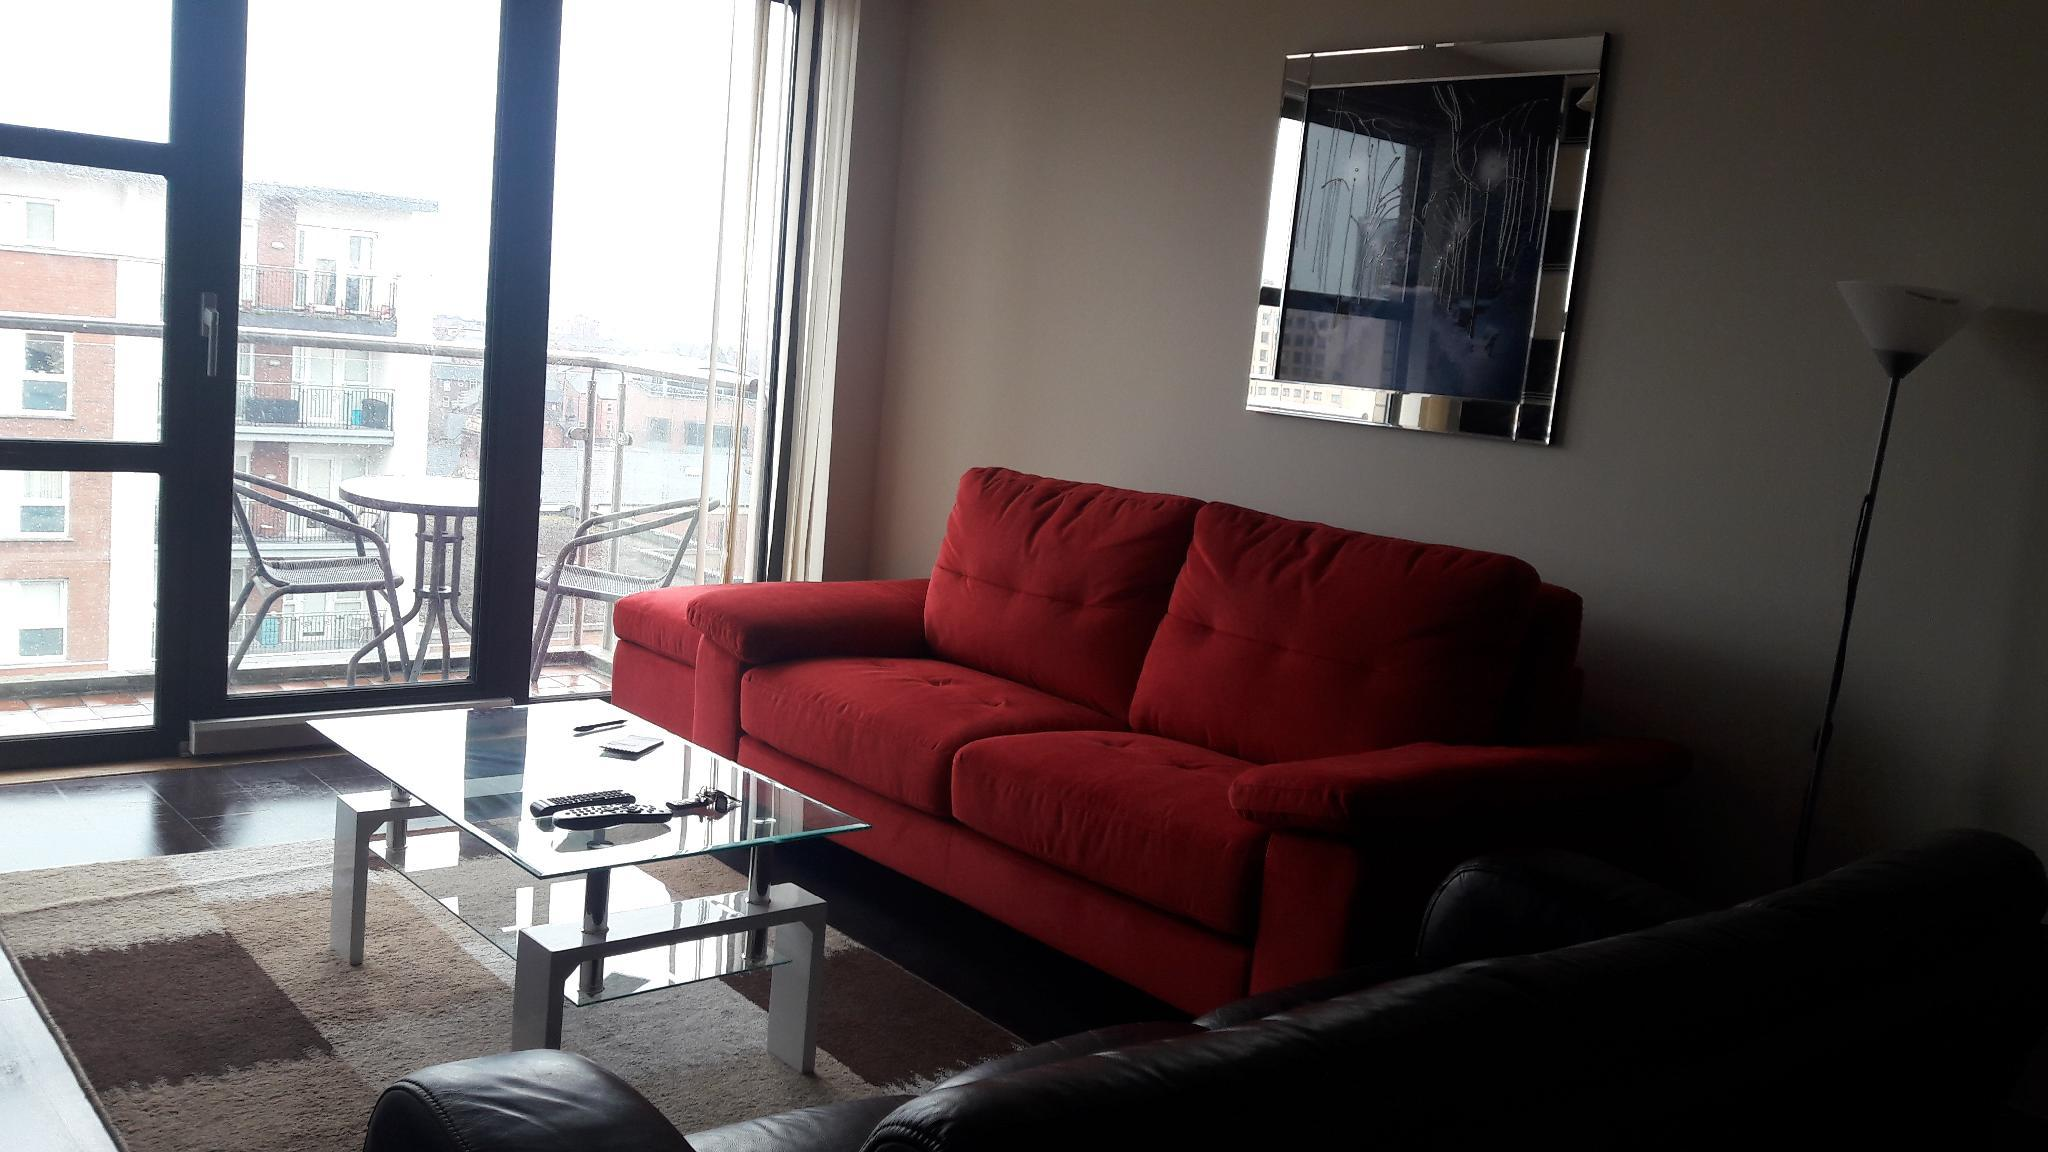 Fabulous Apartment with Balcony in City Center. Reviews